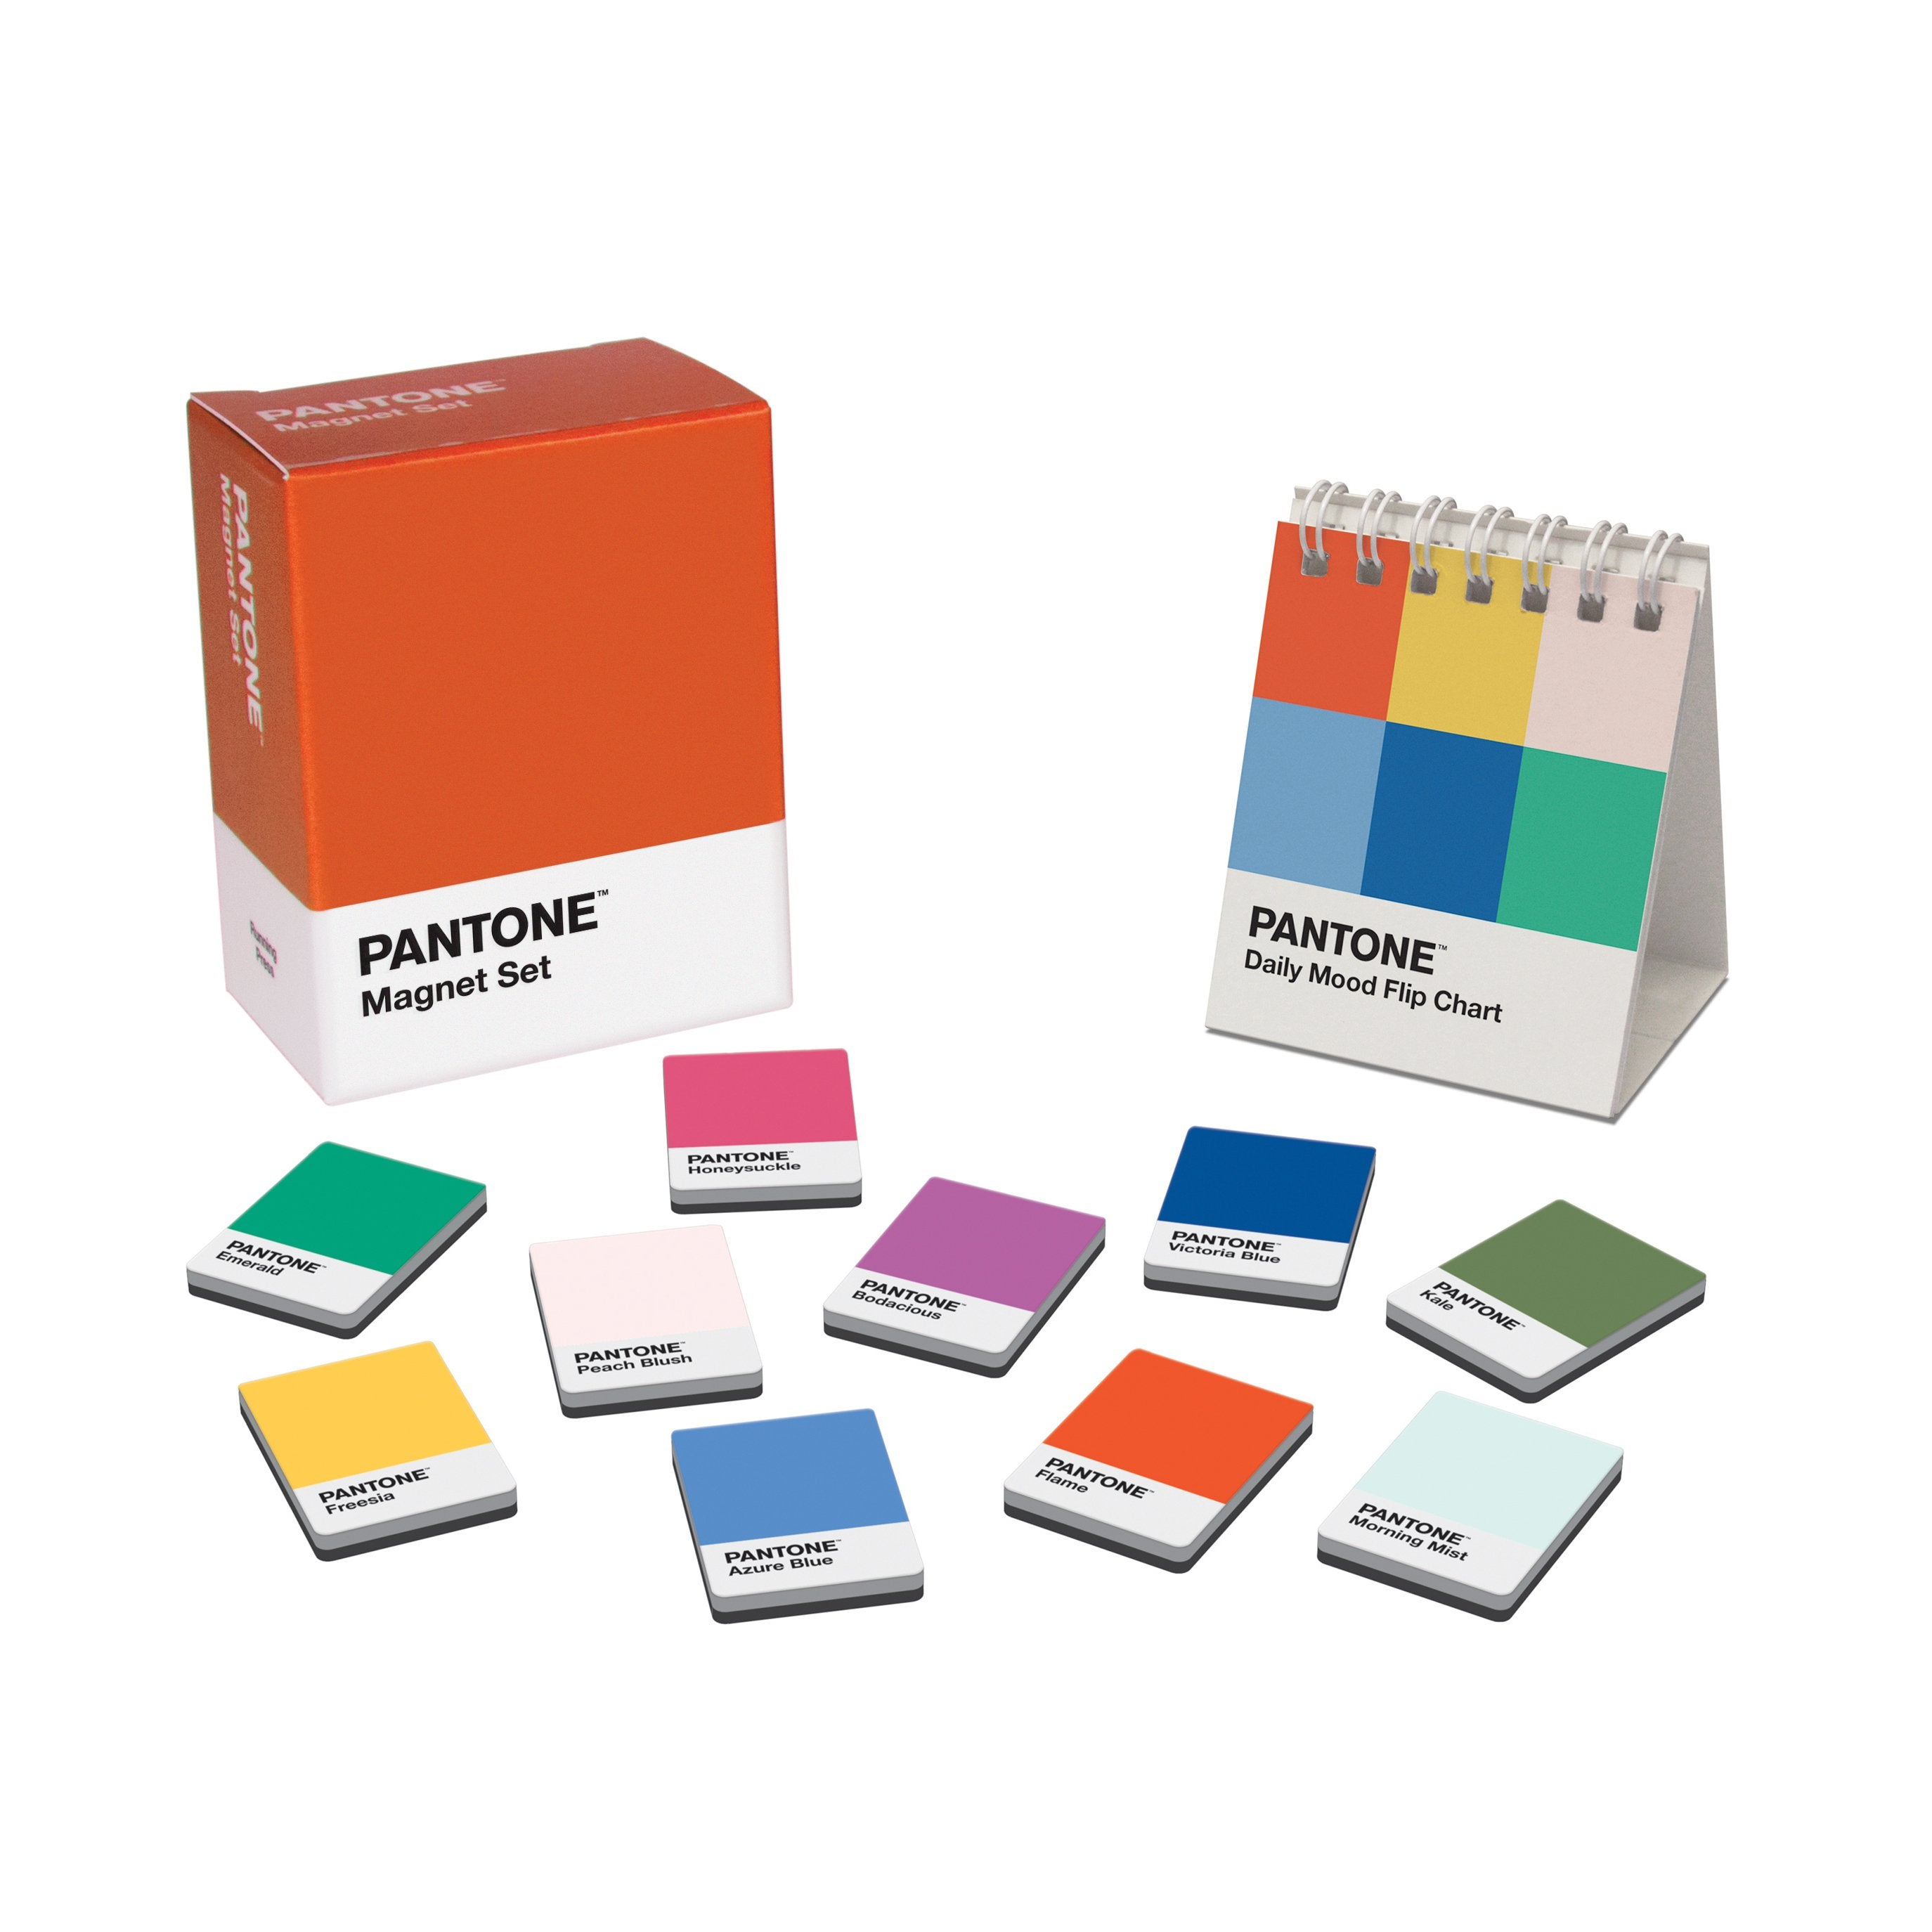 PANTONE MAGNETIC SET